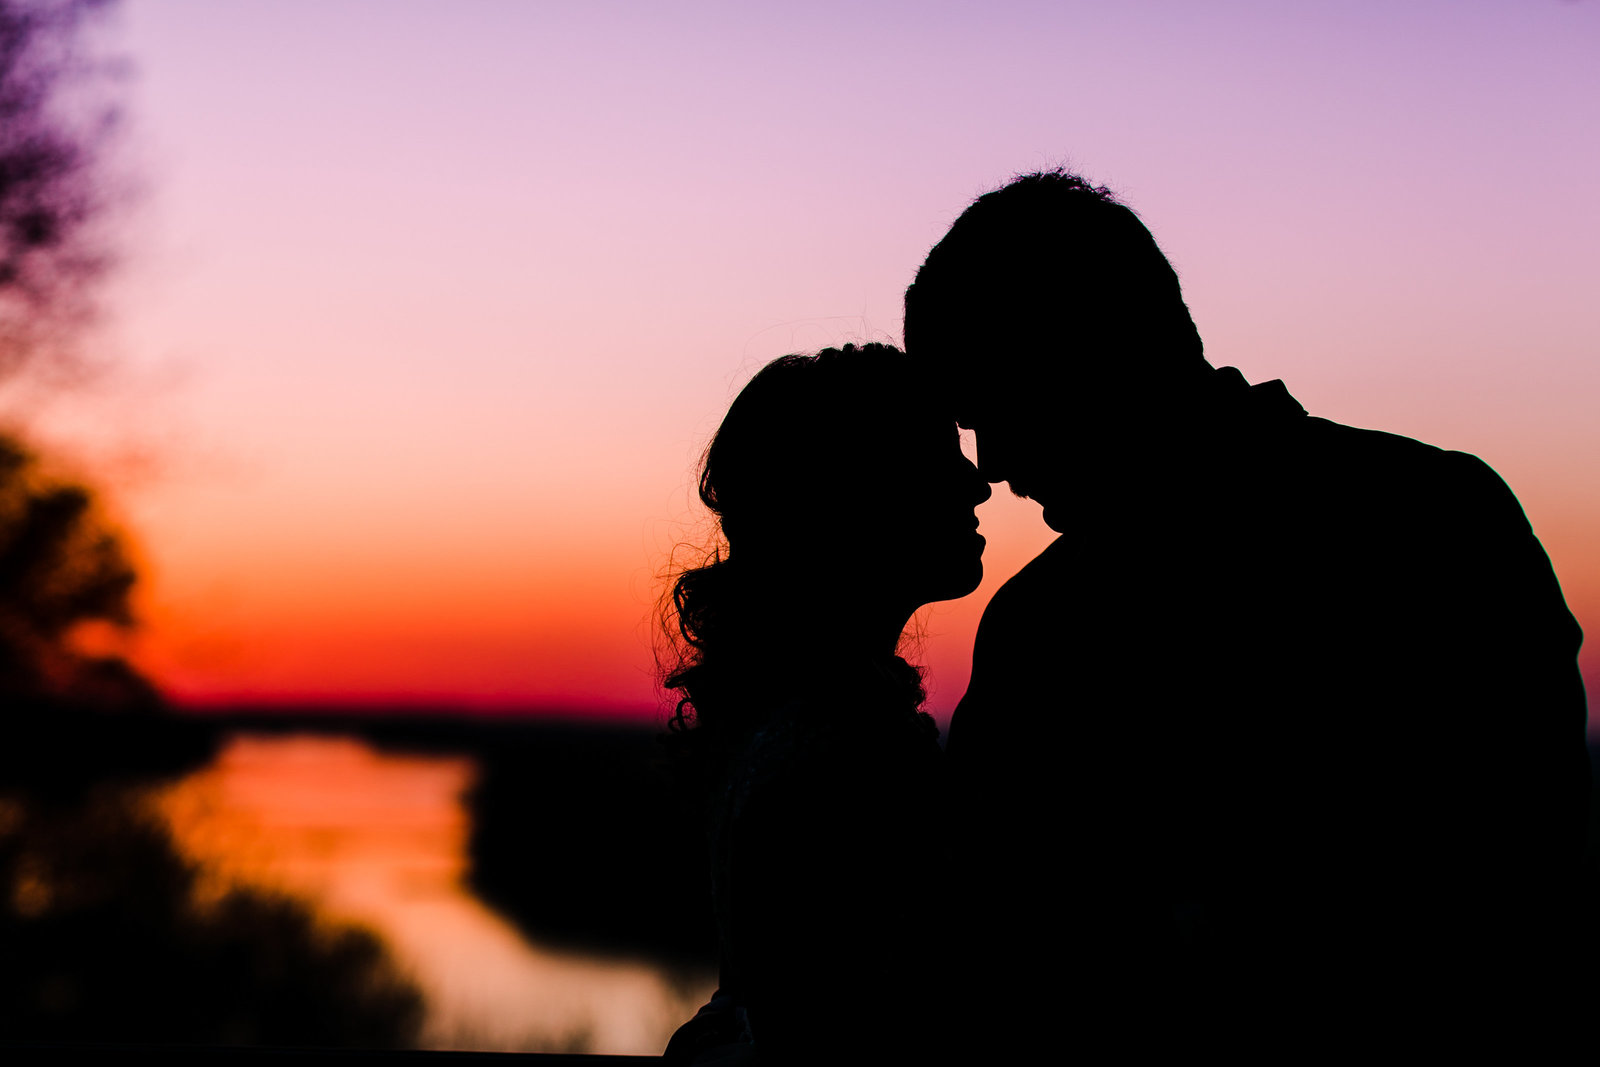 Bride and groom silhouette with the burning sunset in the background.